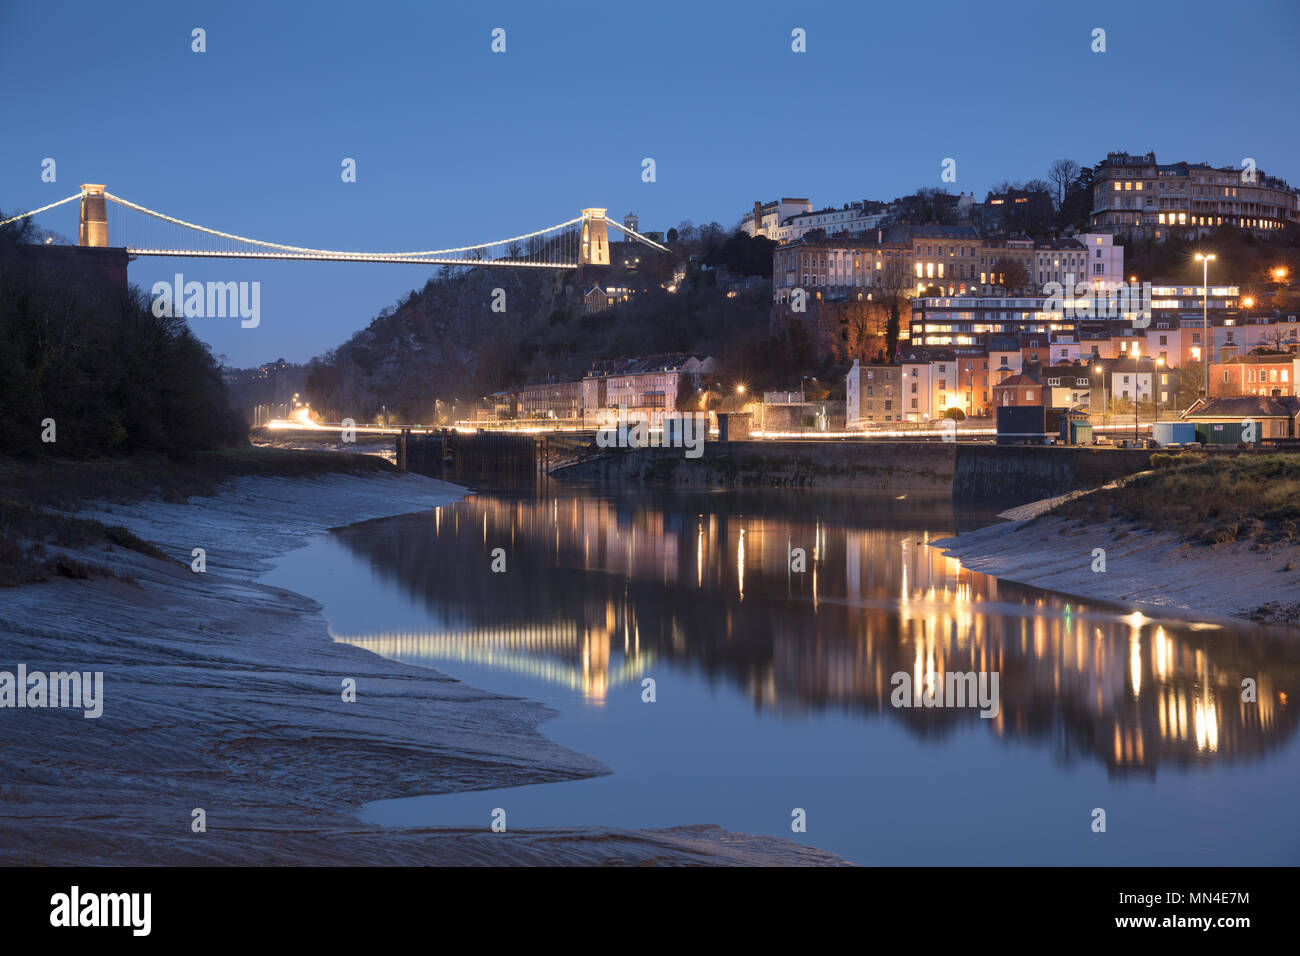 The Avon River, Hotwells and Clifton Suspension Bridge over the Avon Gorge at dusk, Bristol, England Stock Photo